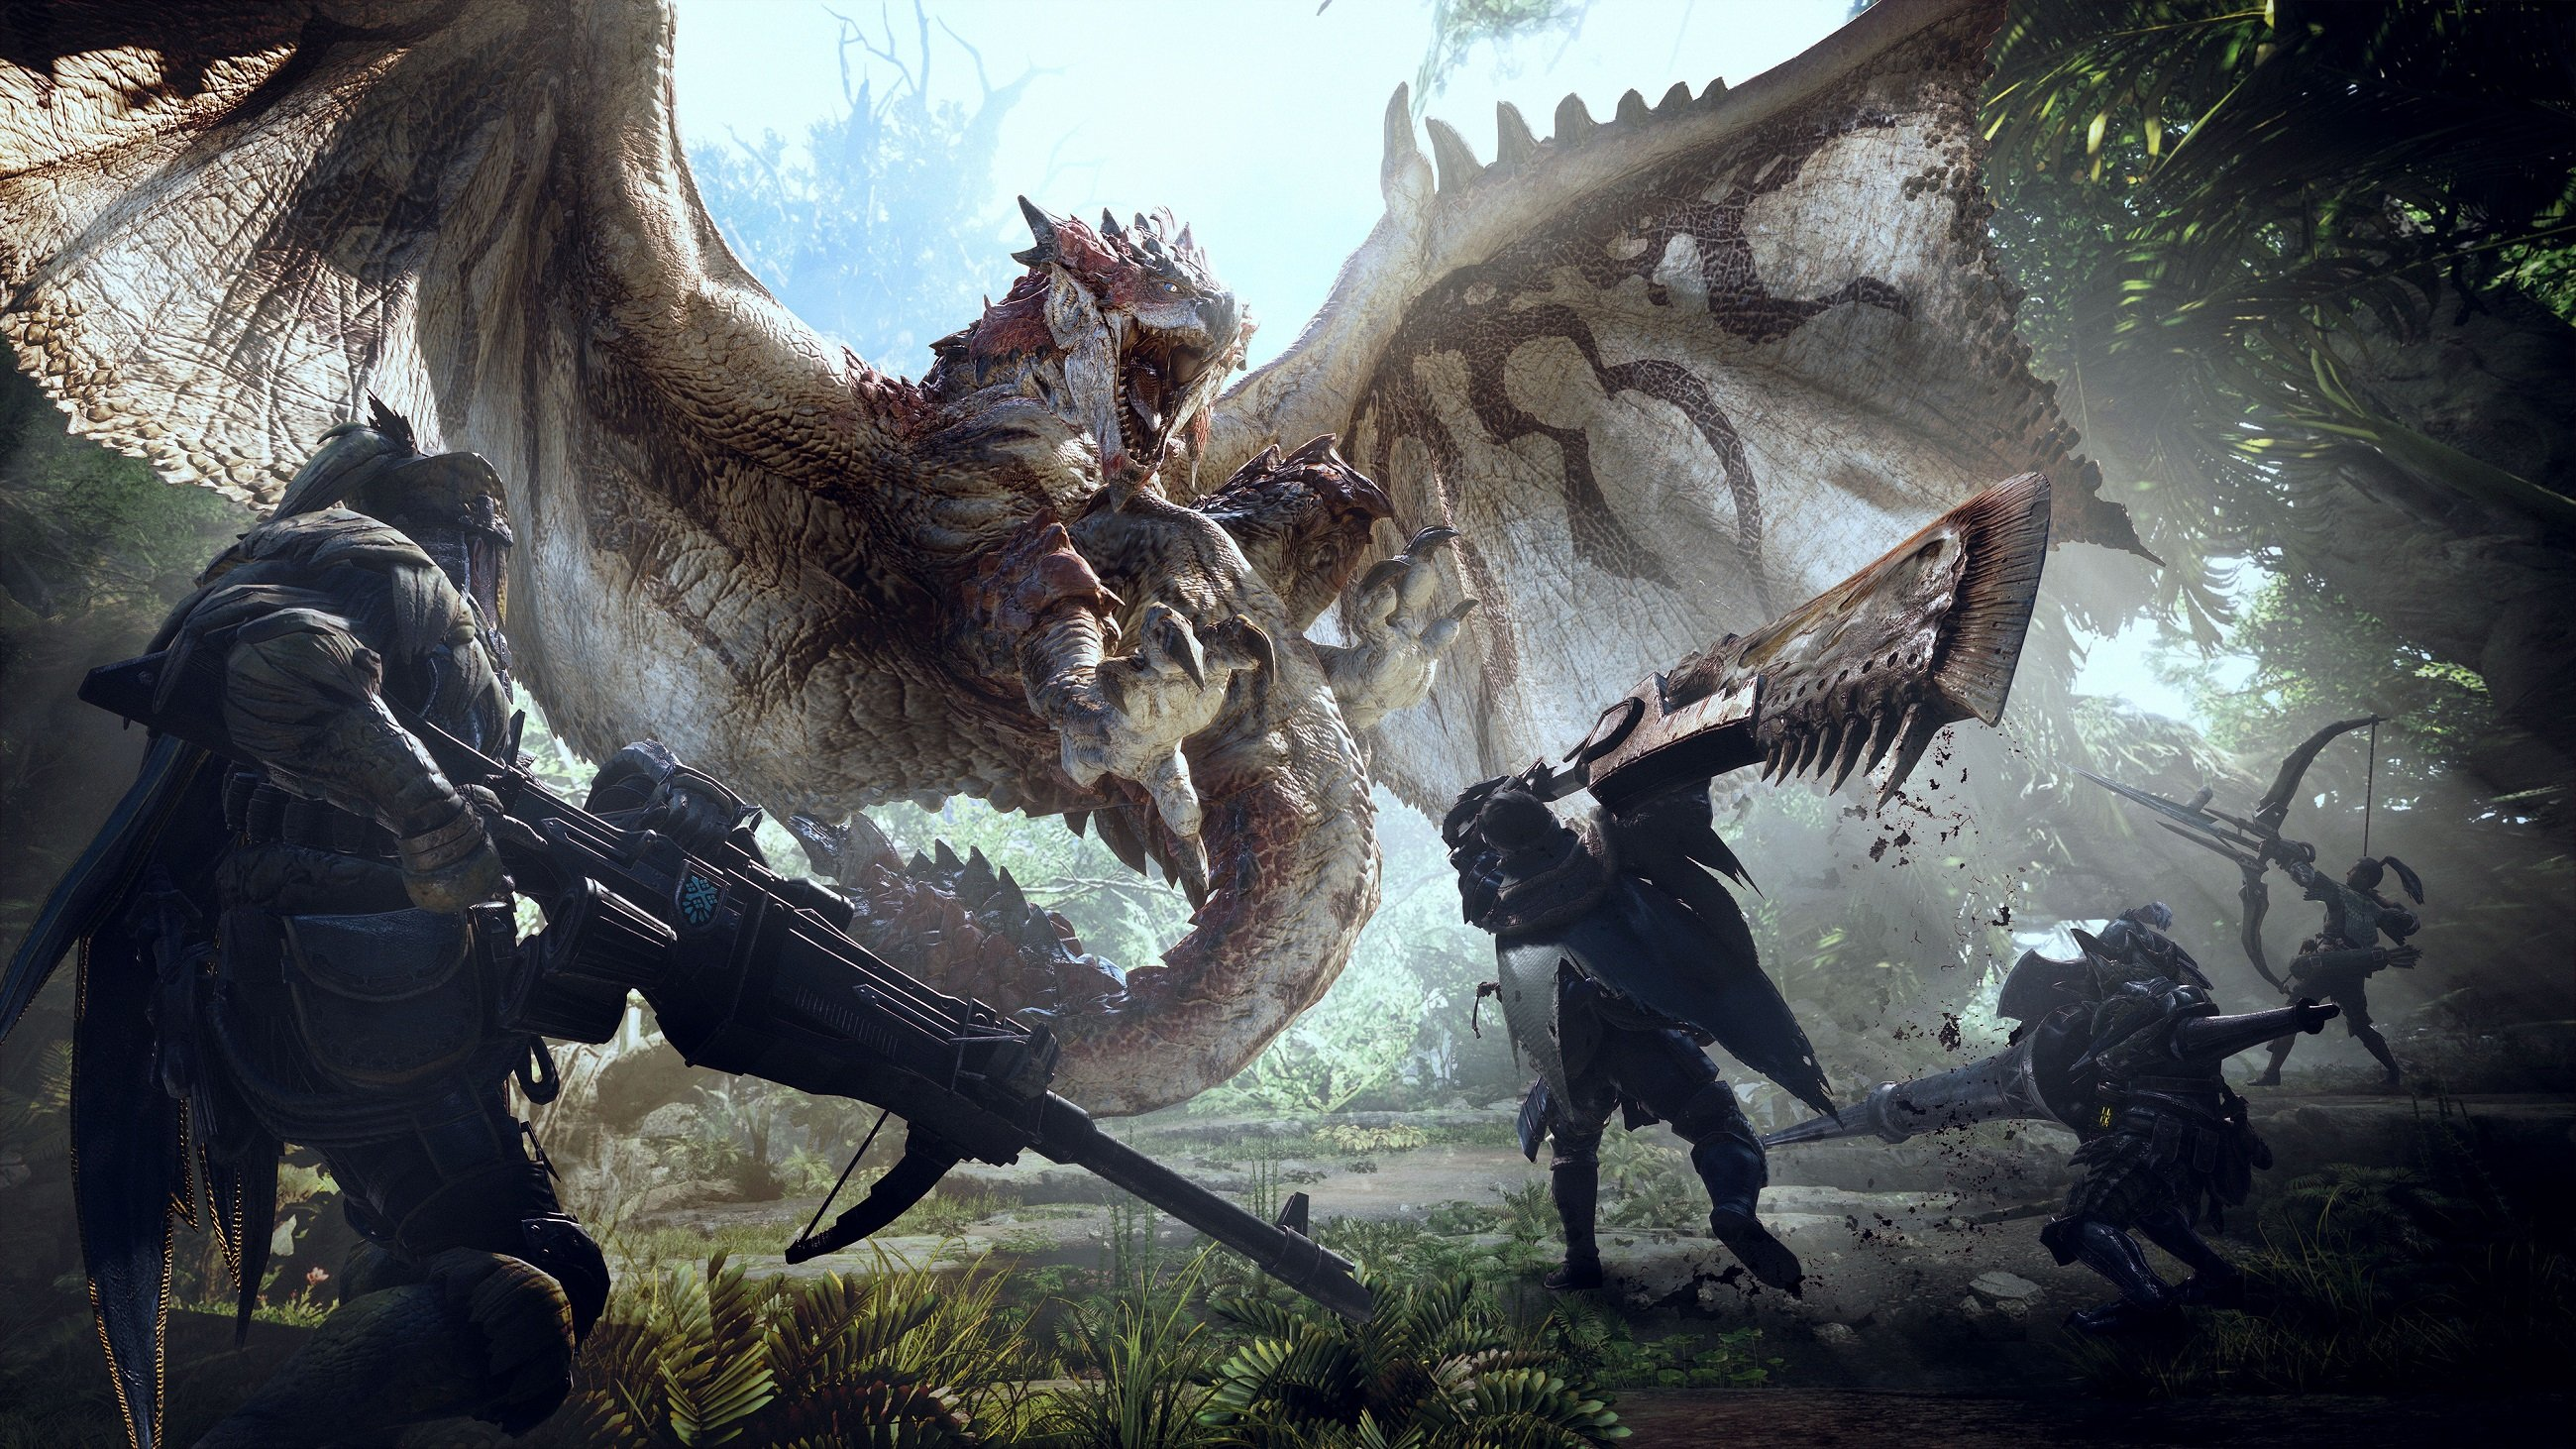 Monster Hunter : Les légendes de la Guilde à venir en 2019